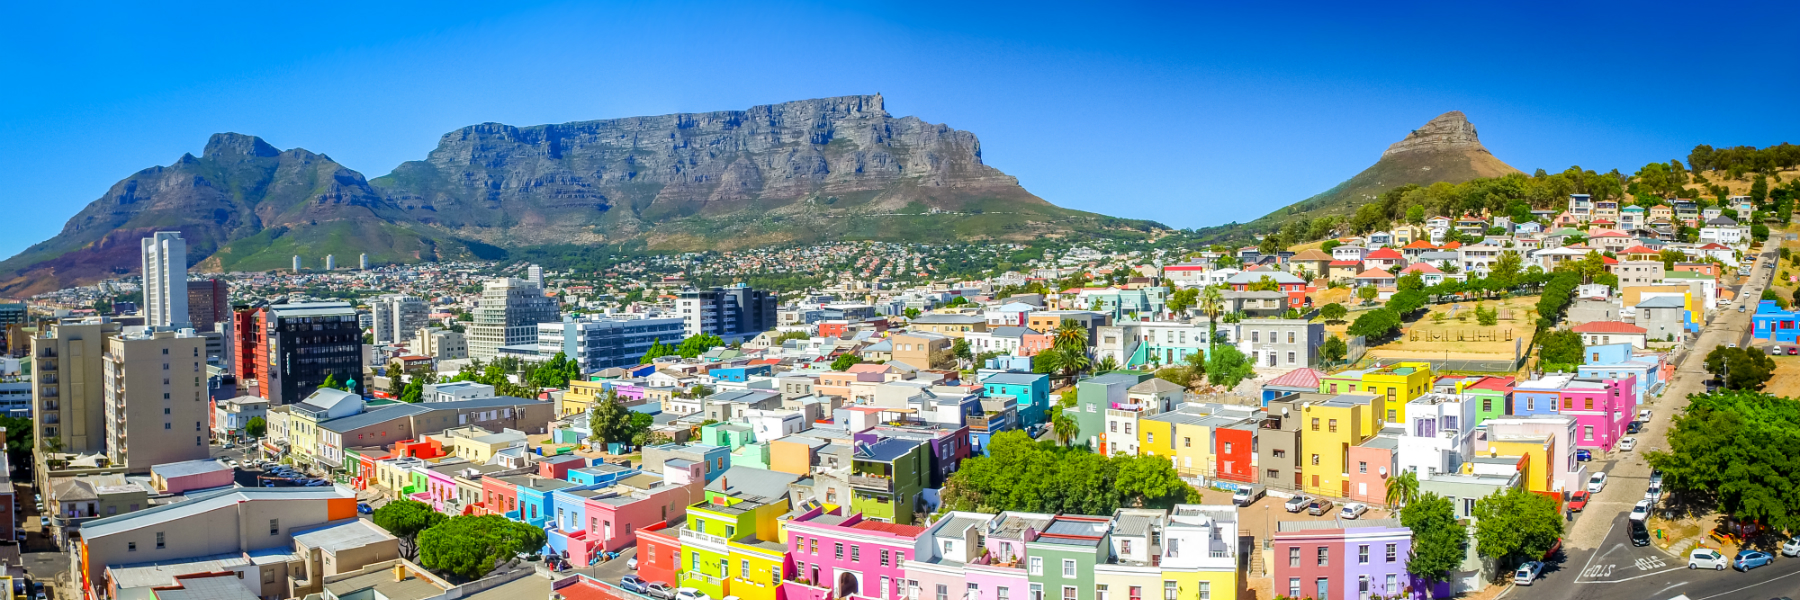 Reasons for Doing a Communications Internship in Cape Town